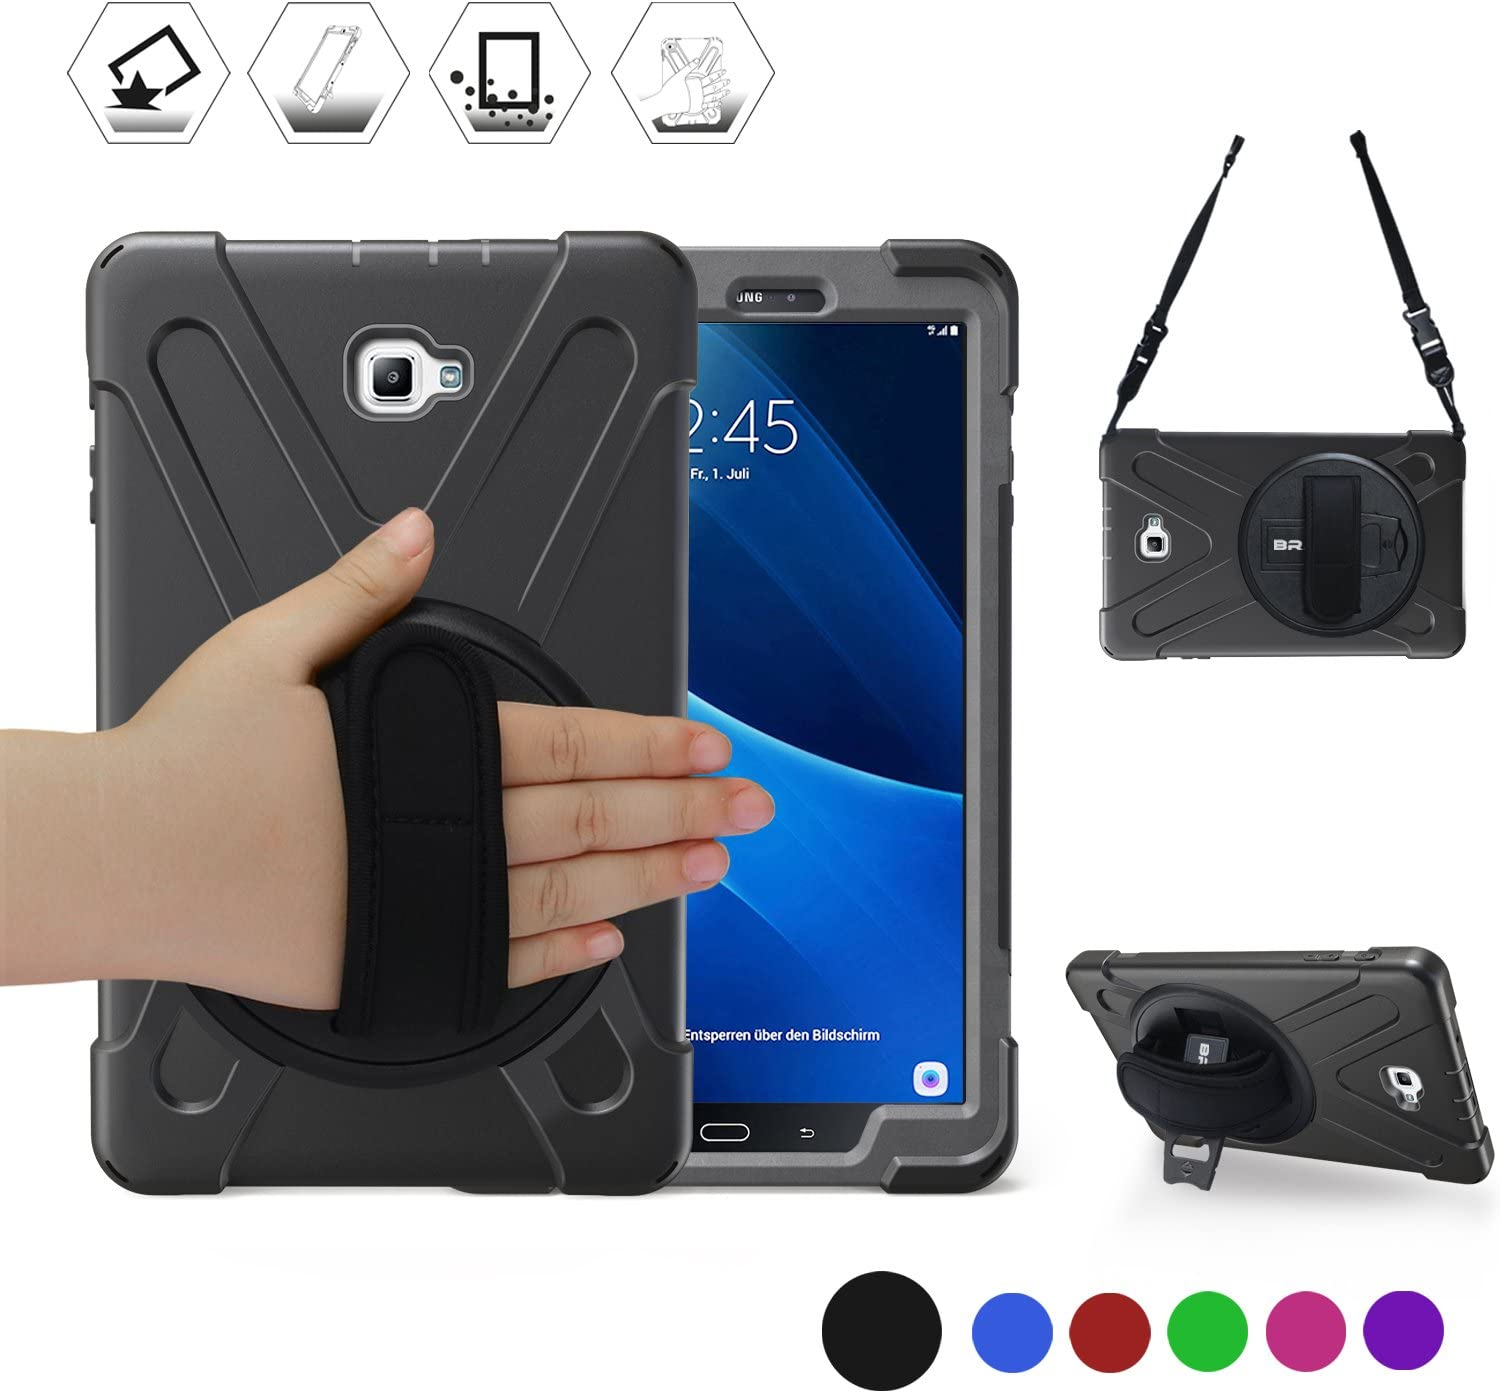 BRAECN Galaxy Tab A 10.1 Case 2016, Heavy Duty Shockproof Kids Friendly Case with Rotating Hand Strap, Kickstand, Carrying Shoulder Strap for Samsung Galaxy Tab A 10.1 2016 Model SM-T580 SM-T585-Black